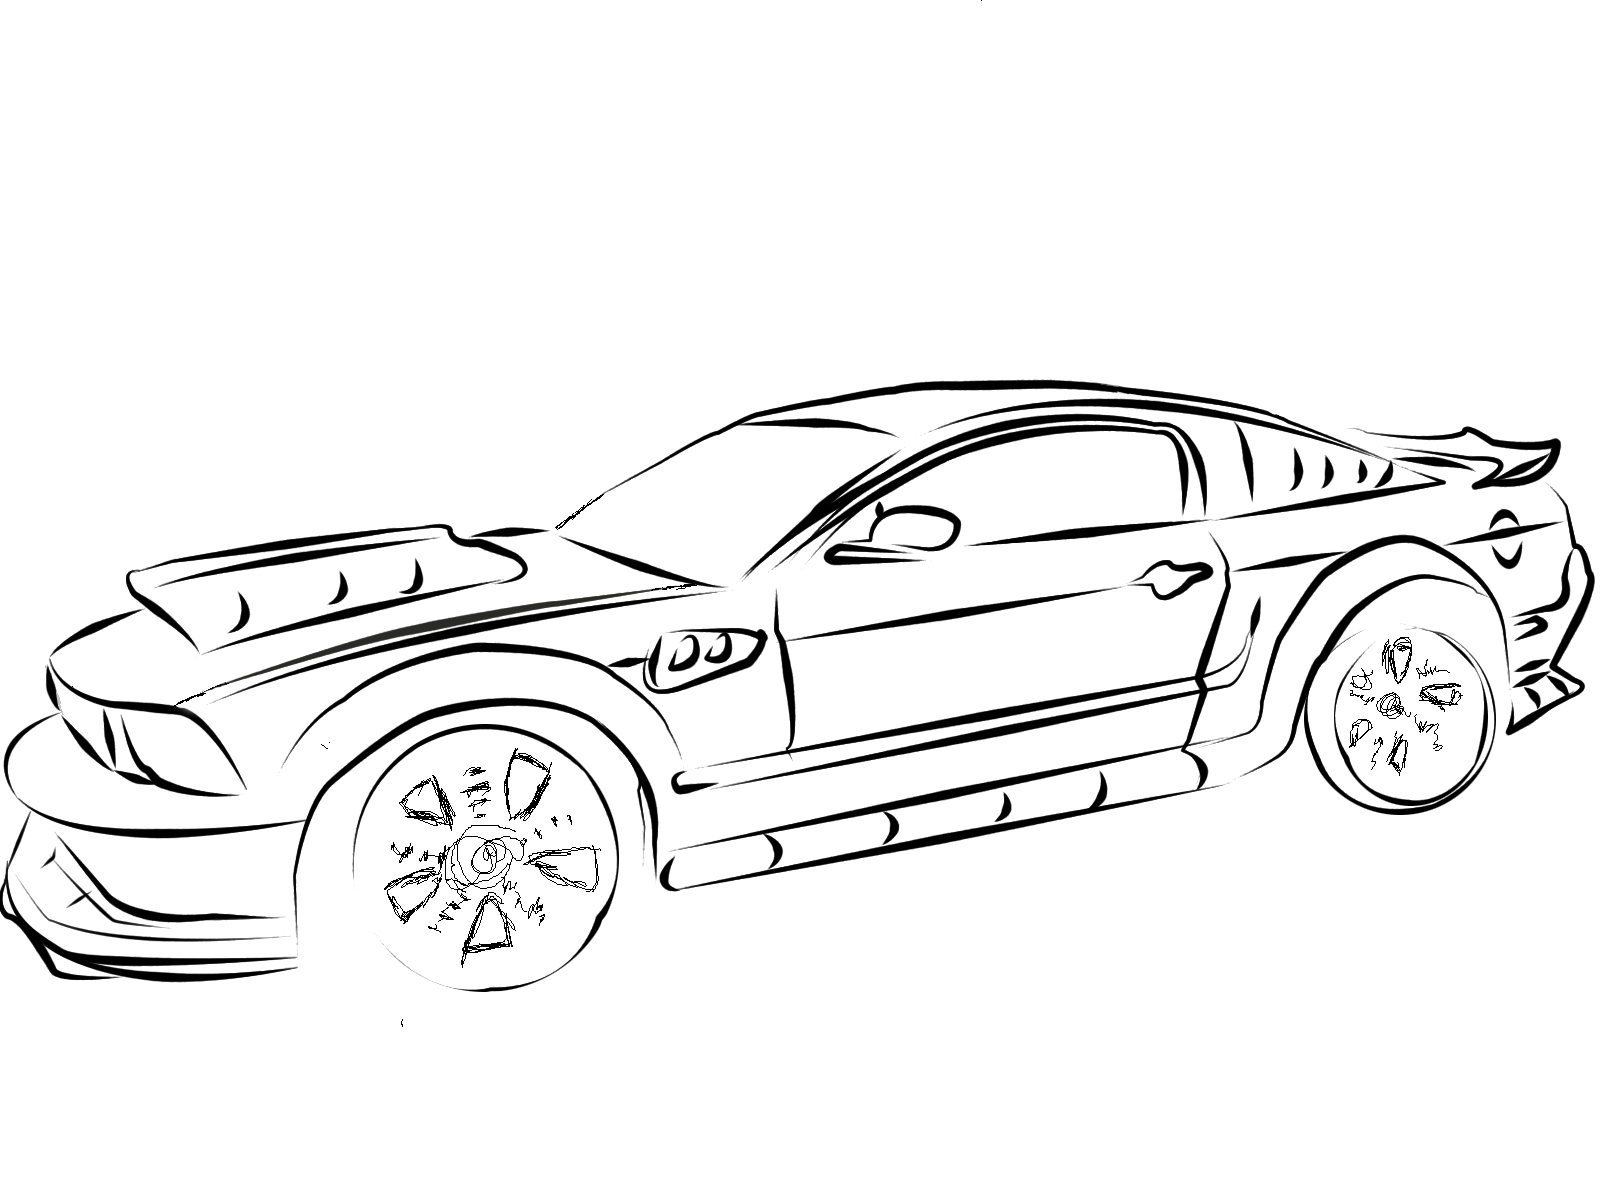 1600x1200 Ford Mustang Logo Drawing Wallpaper 1600x1200